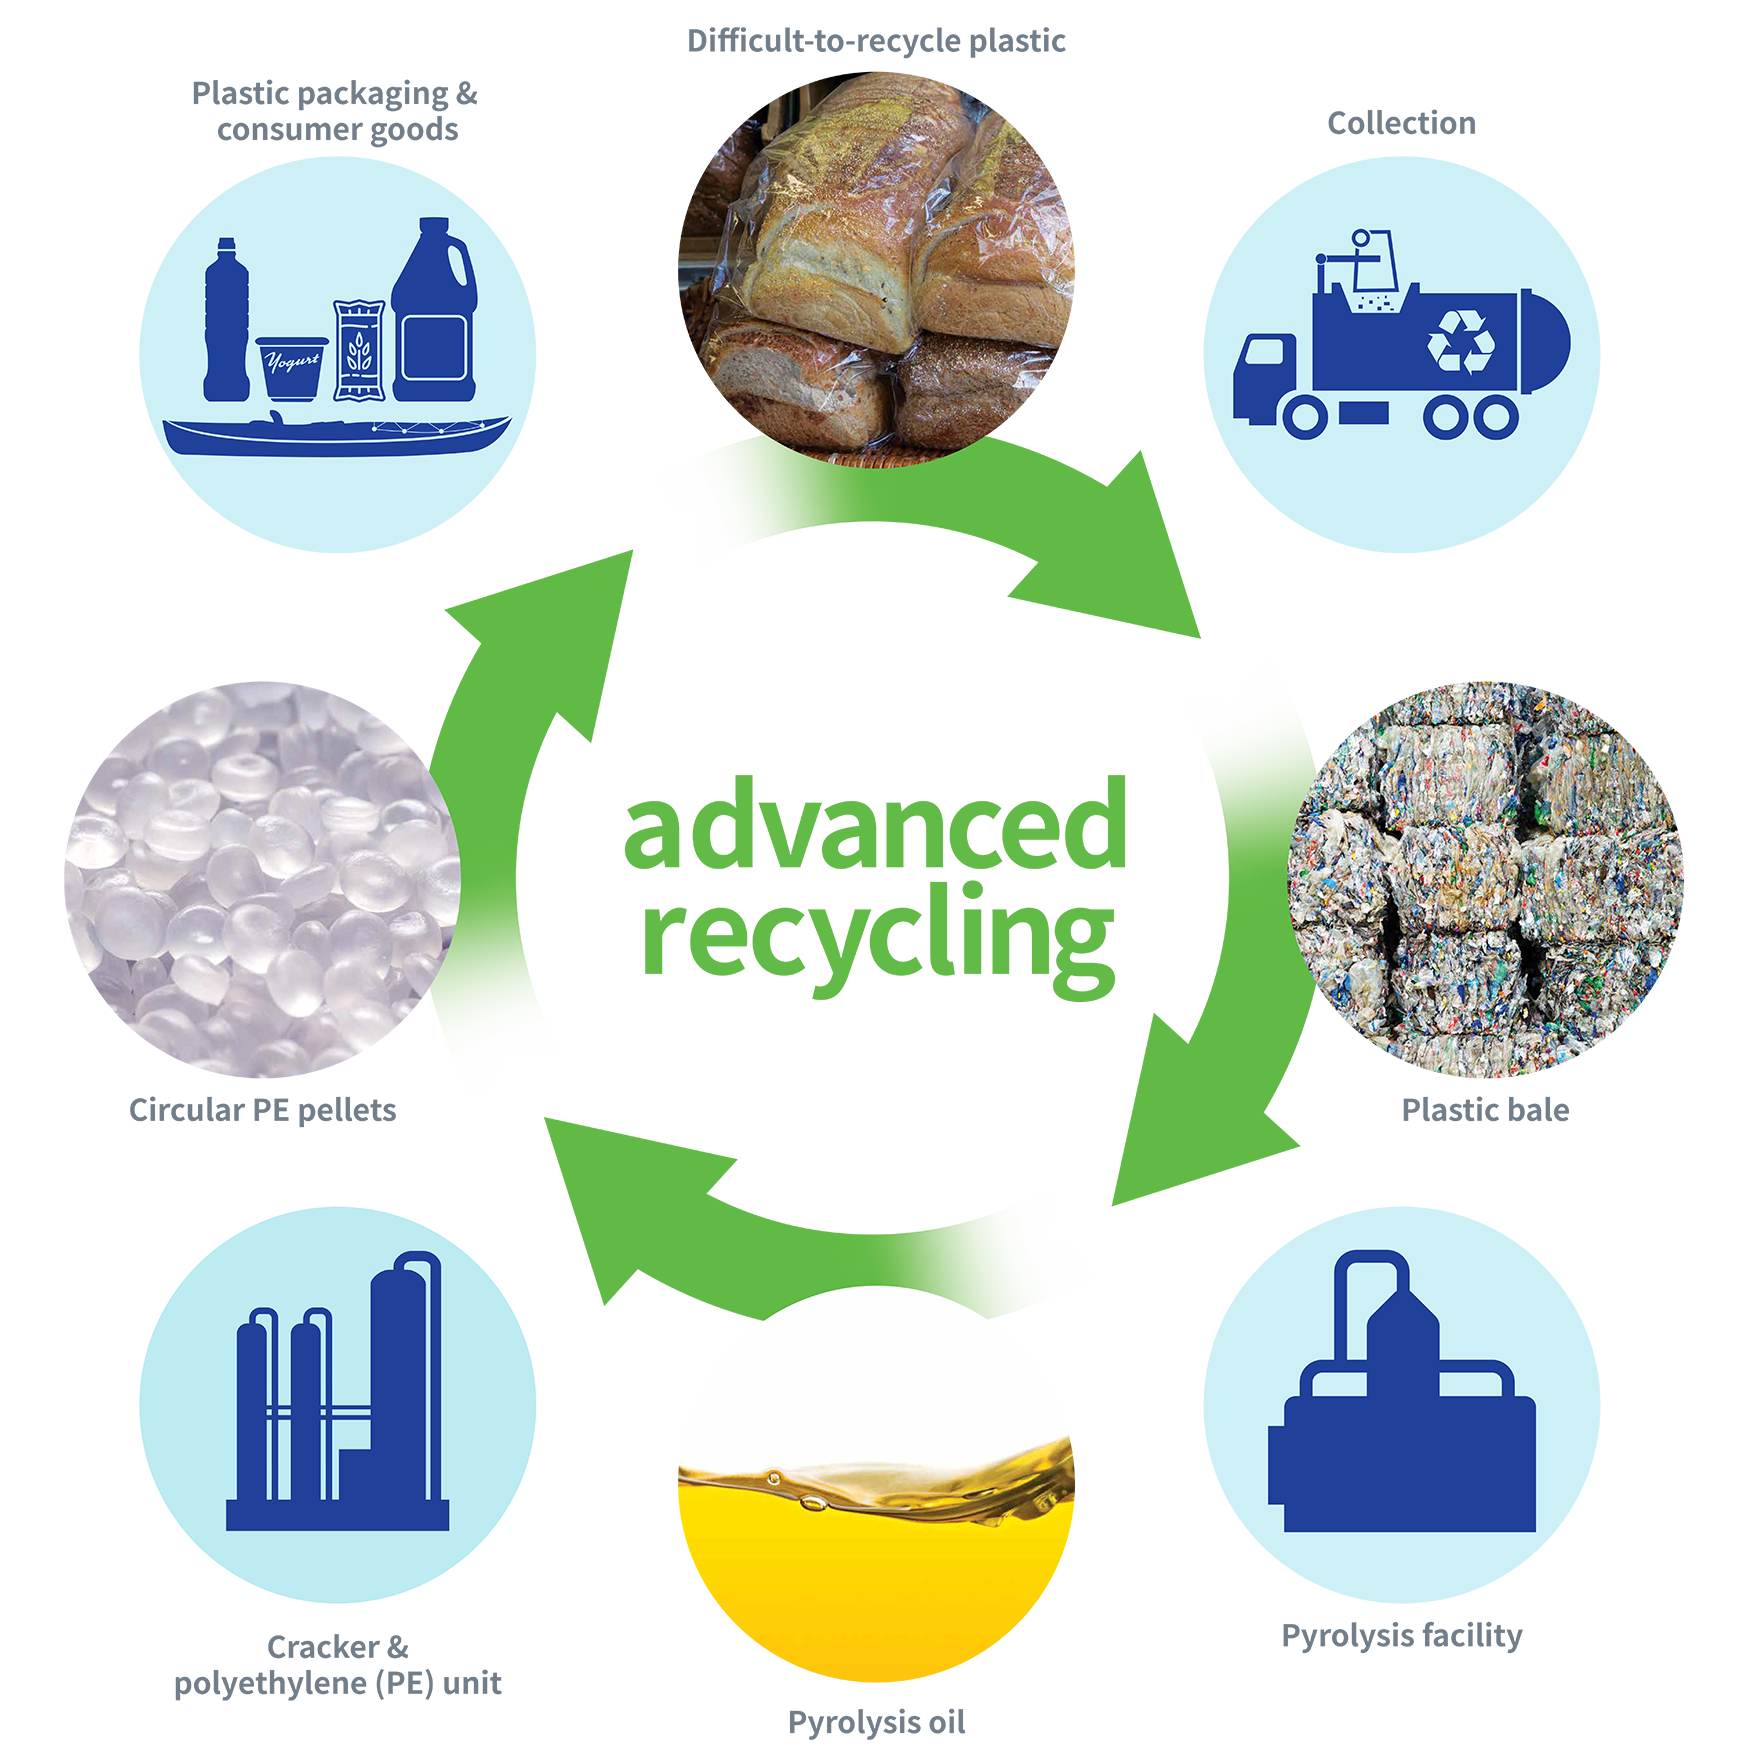 Advanced recycling infographic